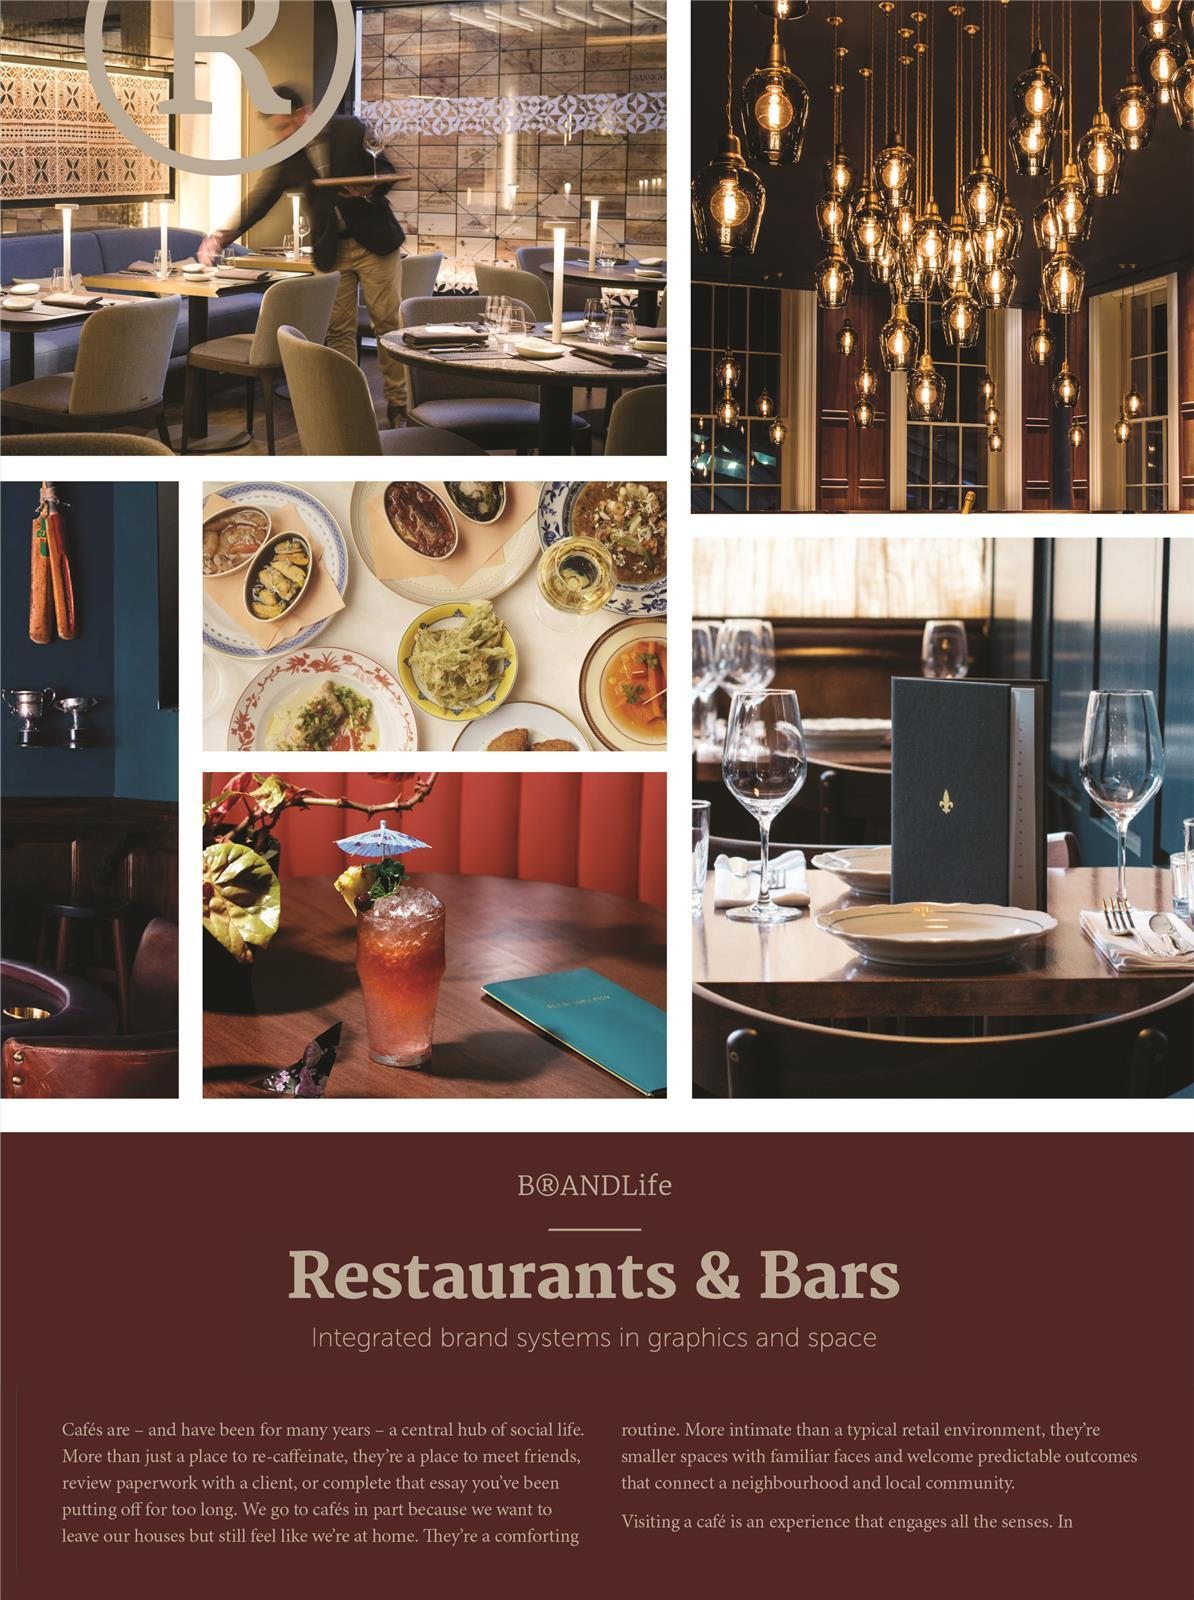 BRANDLIFE RESTAURANTS & BARS: INTEGRATED BRAND SYSTEMS IN GRAPHICS AND SPACE /ANGLAIS